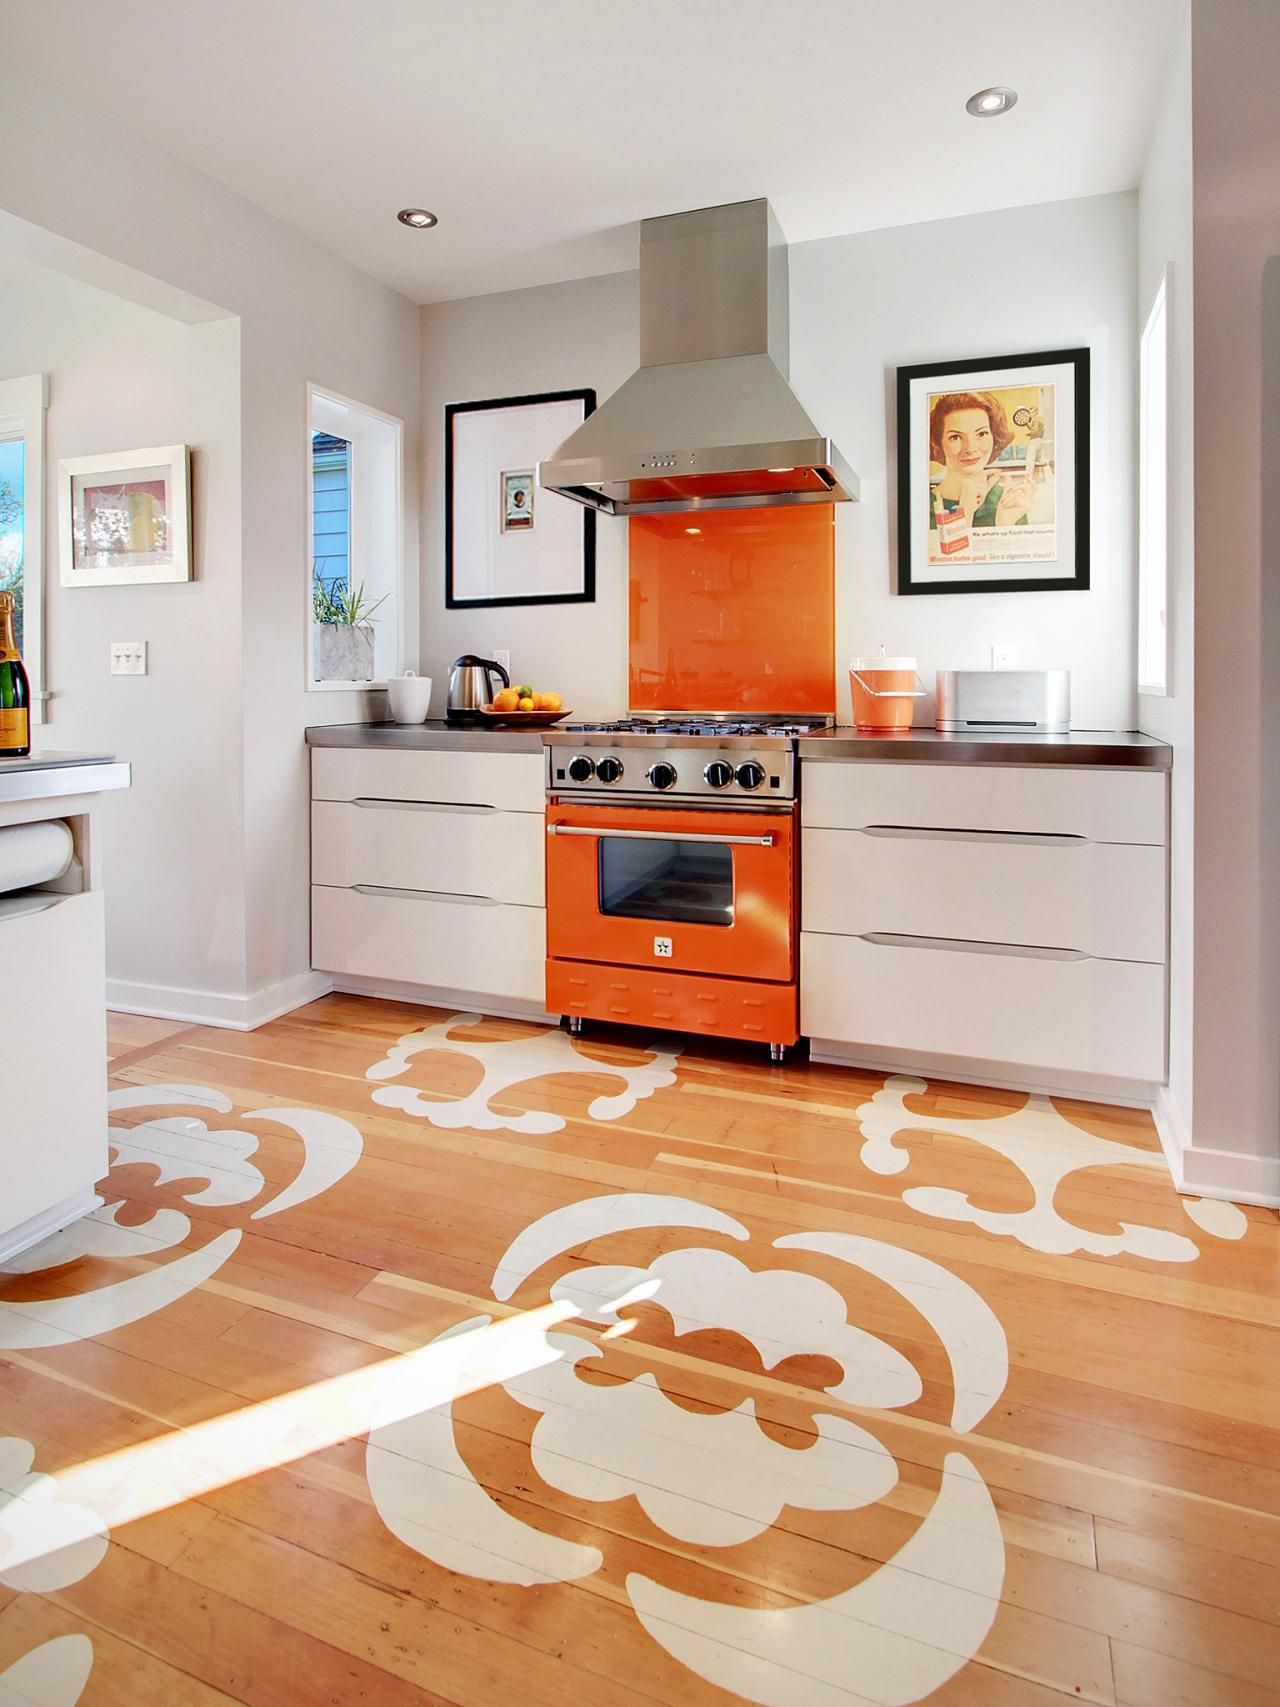 An easy guide to kitchen flooring stencil the kitchen floor dailygadgetfo Gallery